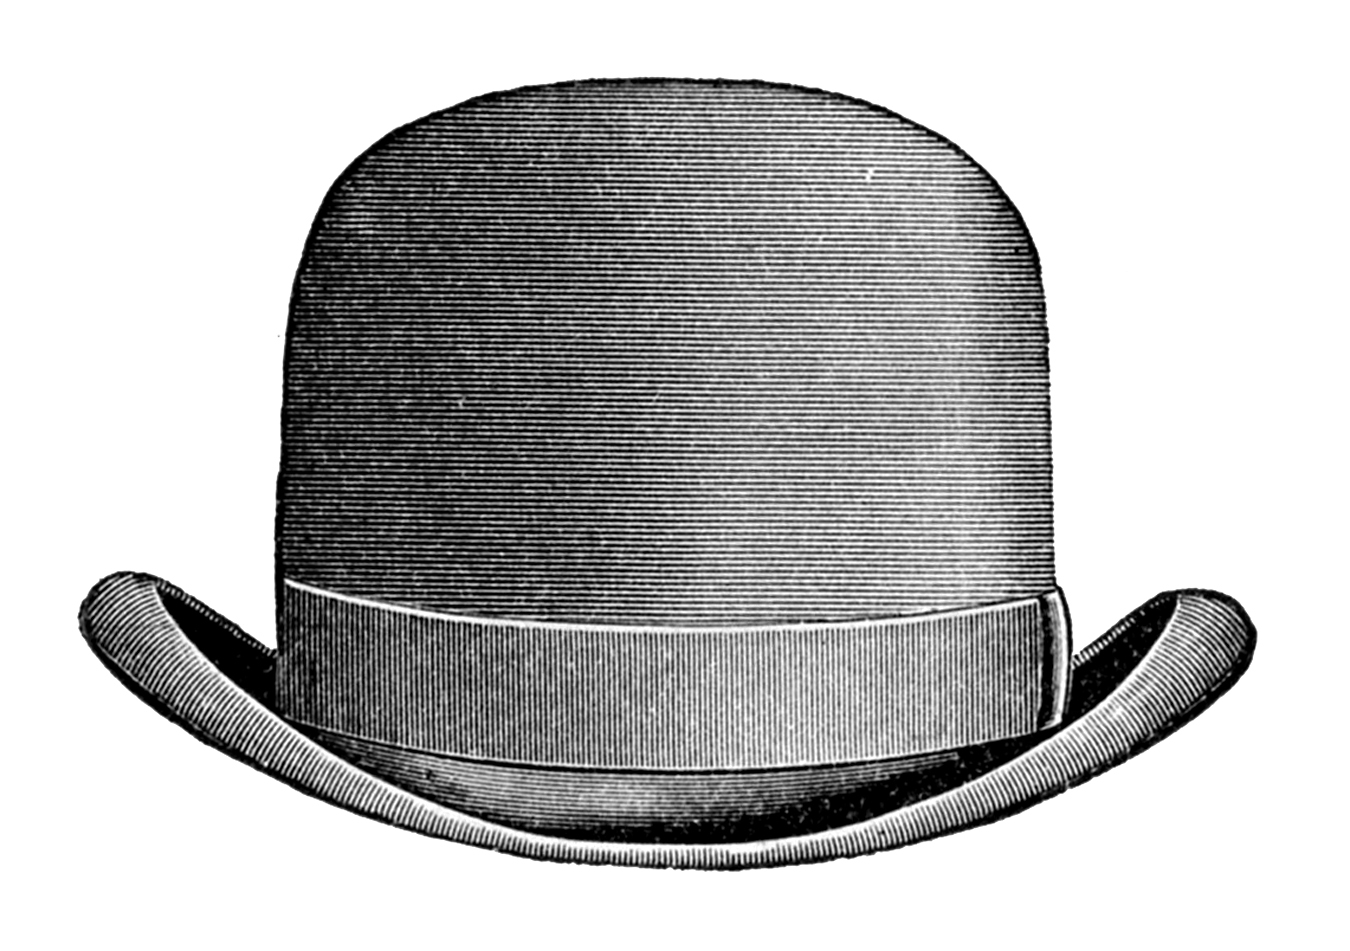 Victorian hat clipart png clip transparent download Free Steampunk Hat Cliparts, Download Free Clip Art, Free ... clip transparent download